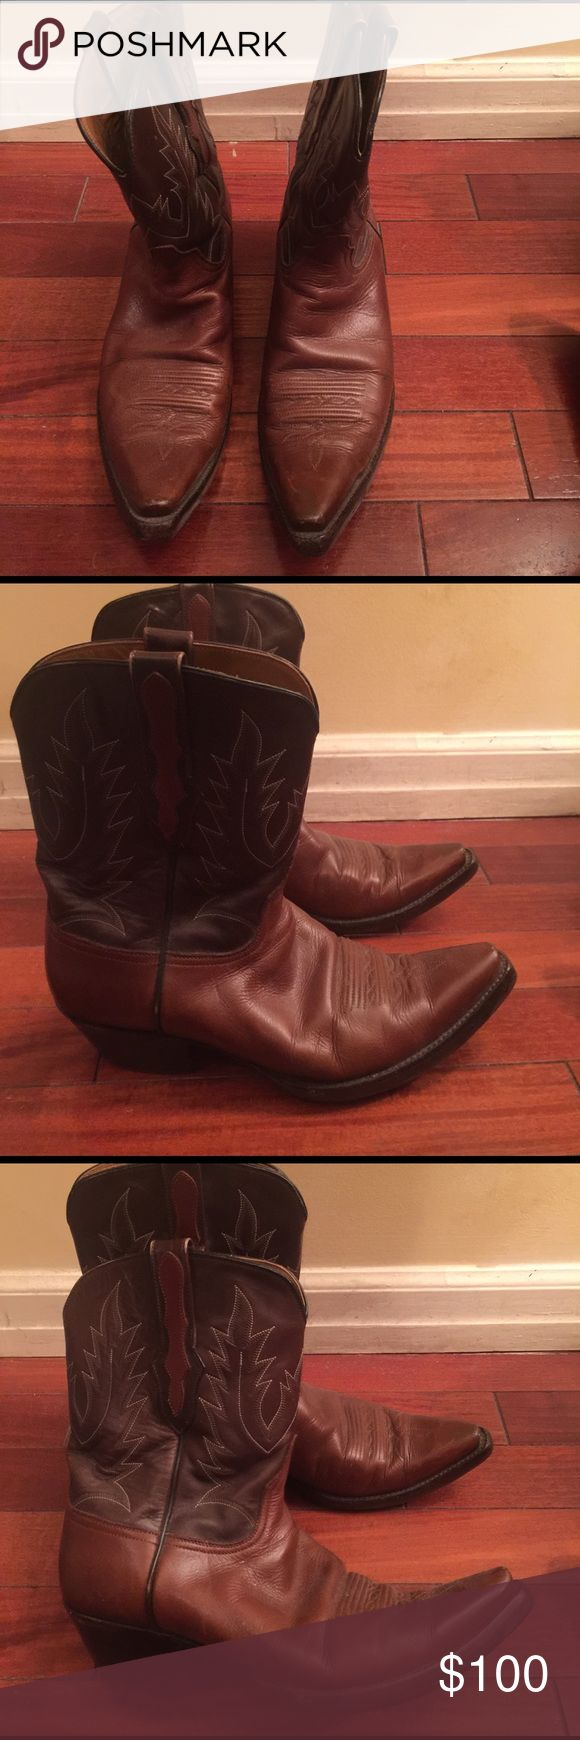 Billy Martin Cowboy boots Billy Martin brown leather cowboy boots. Billy Martin Shoes